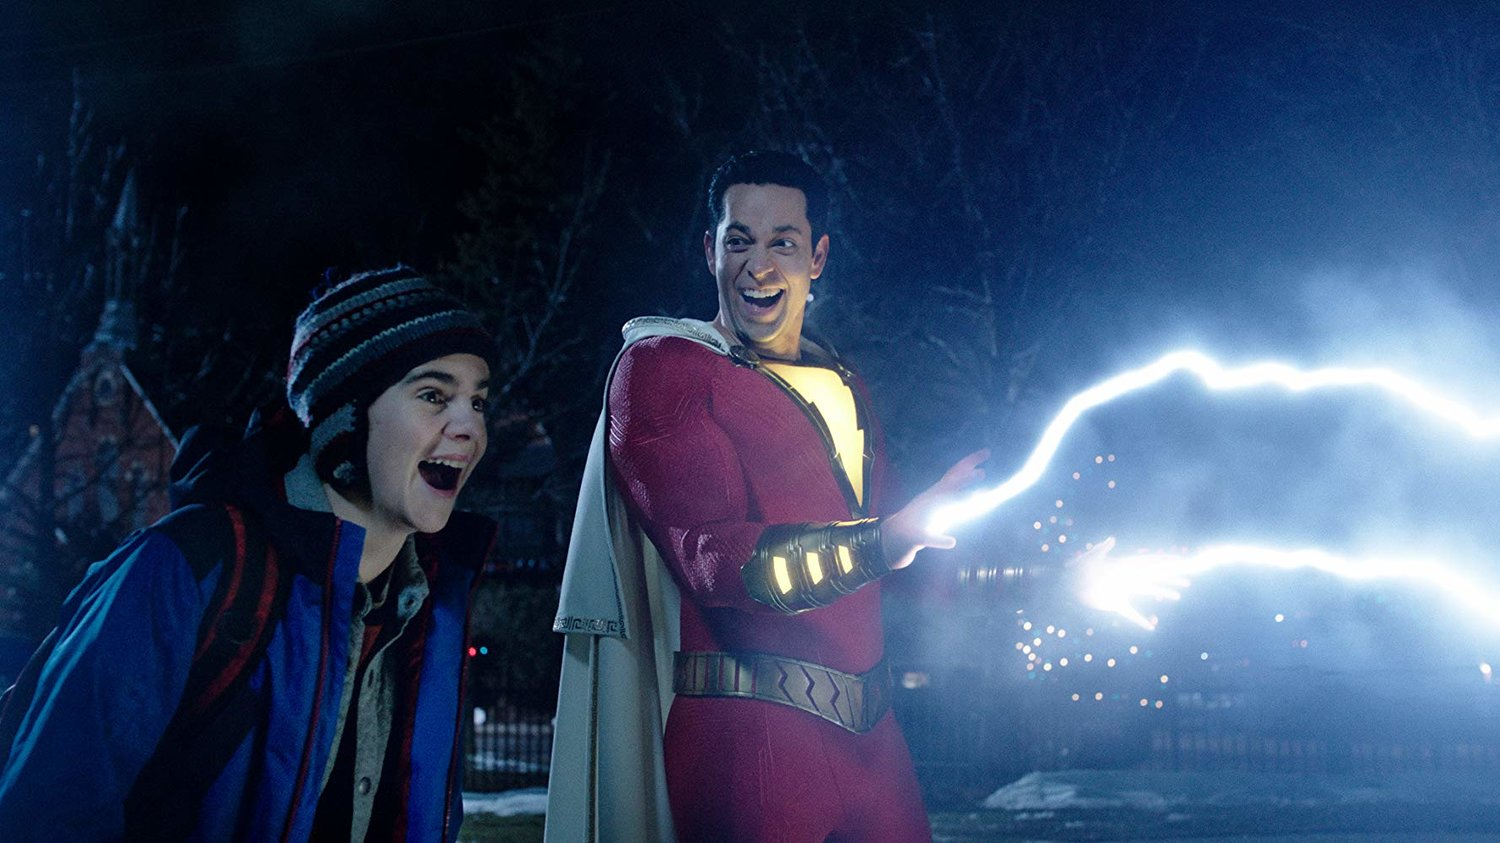 Zachary Levi and Jack Dylan Grazer star in Shazam!